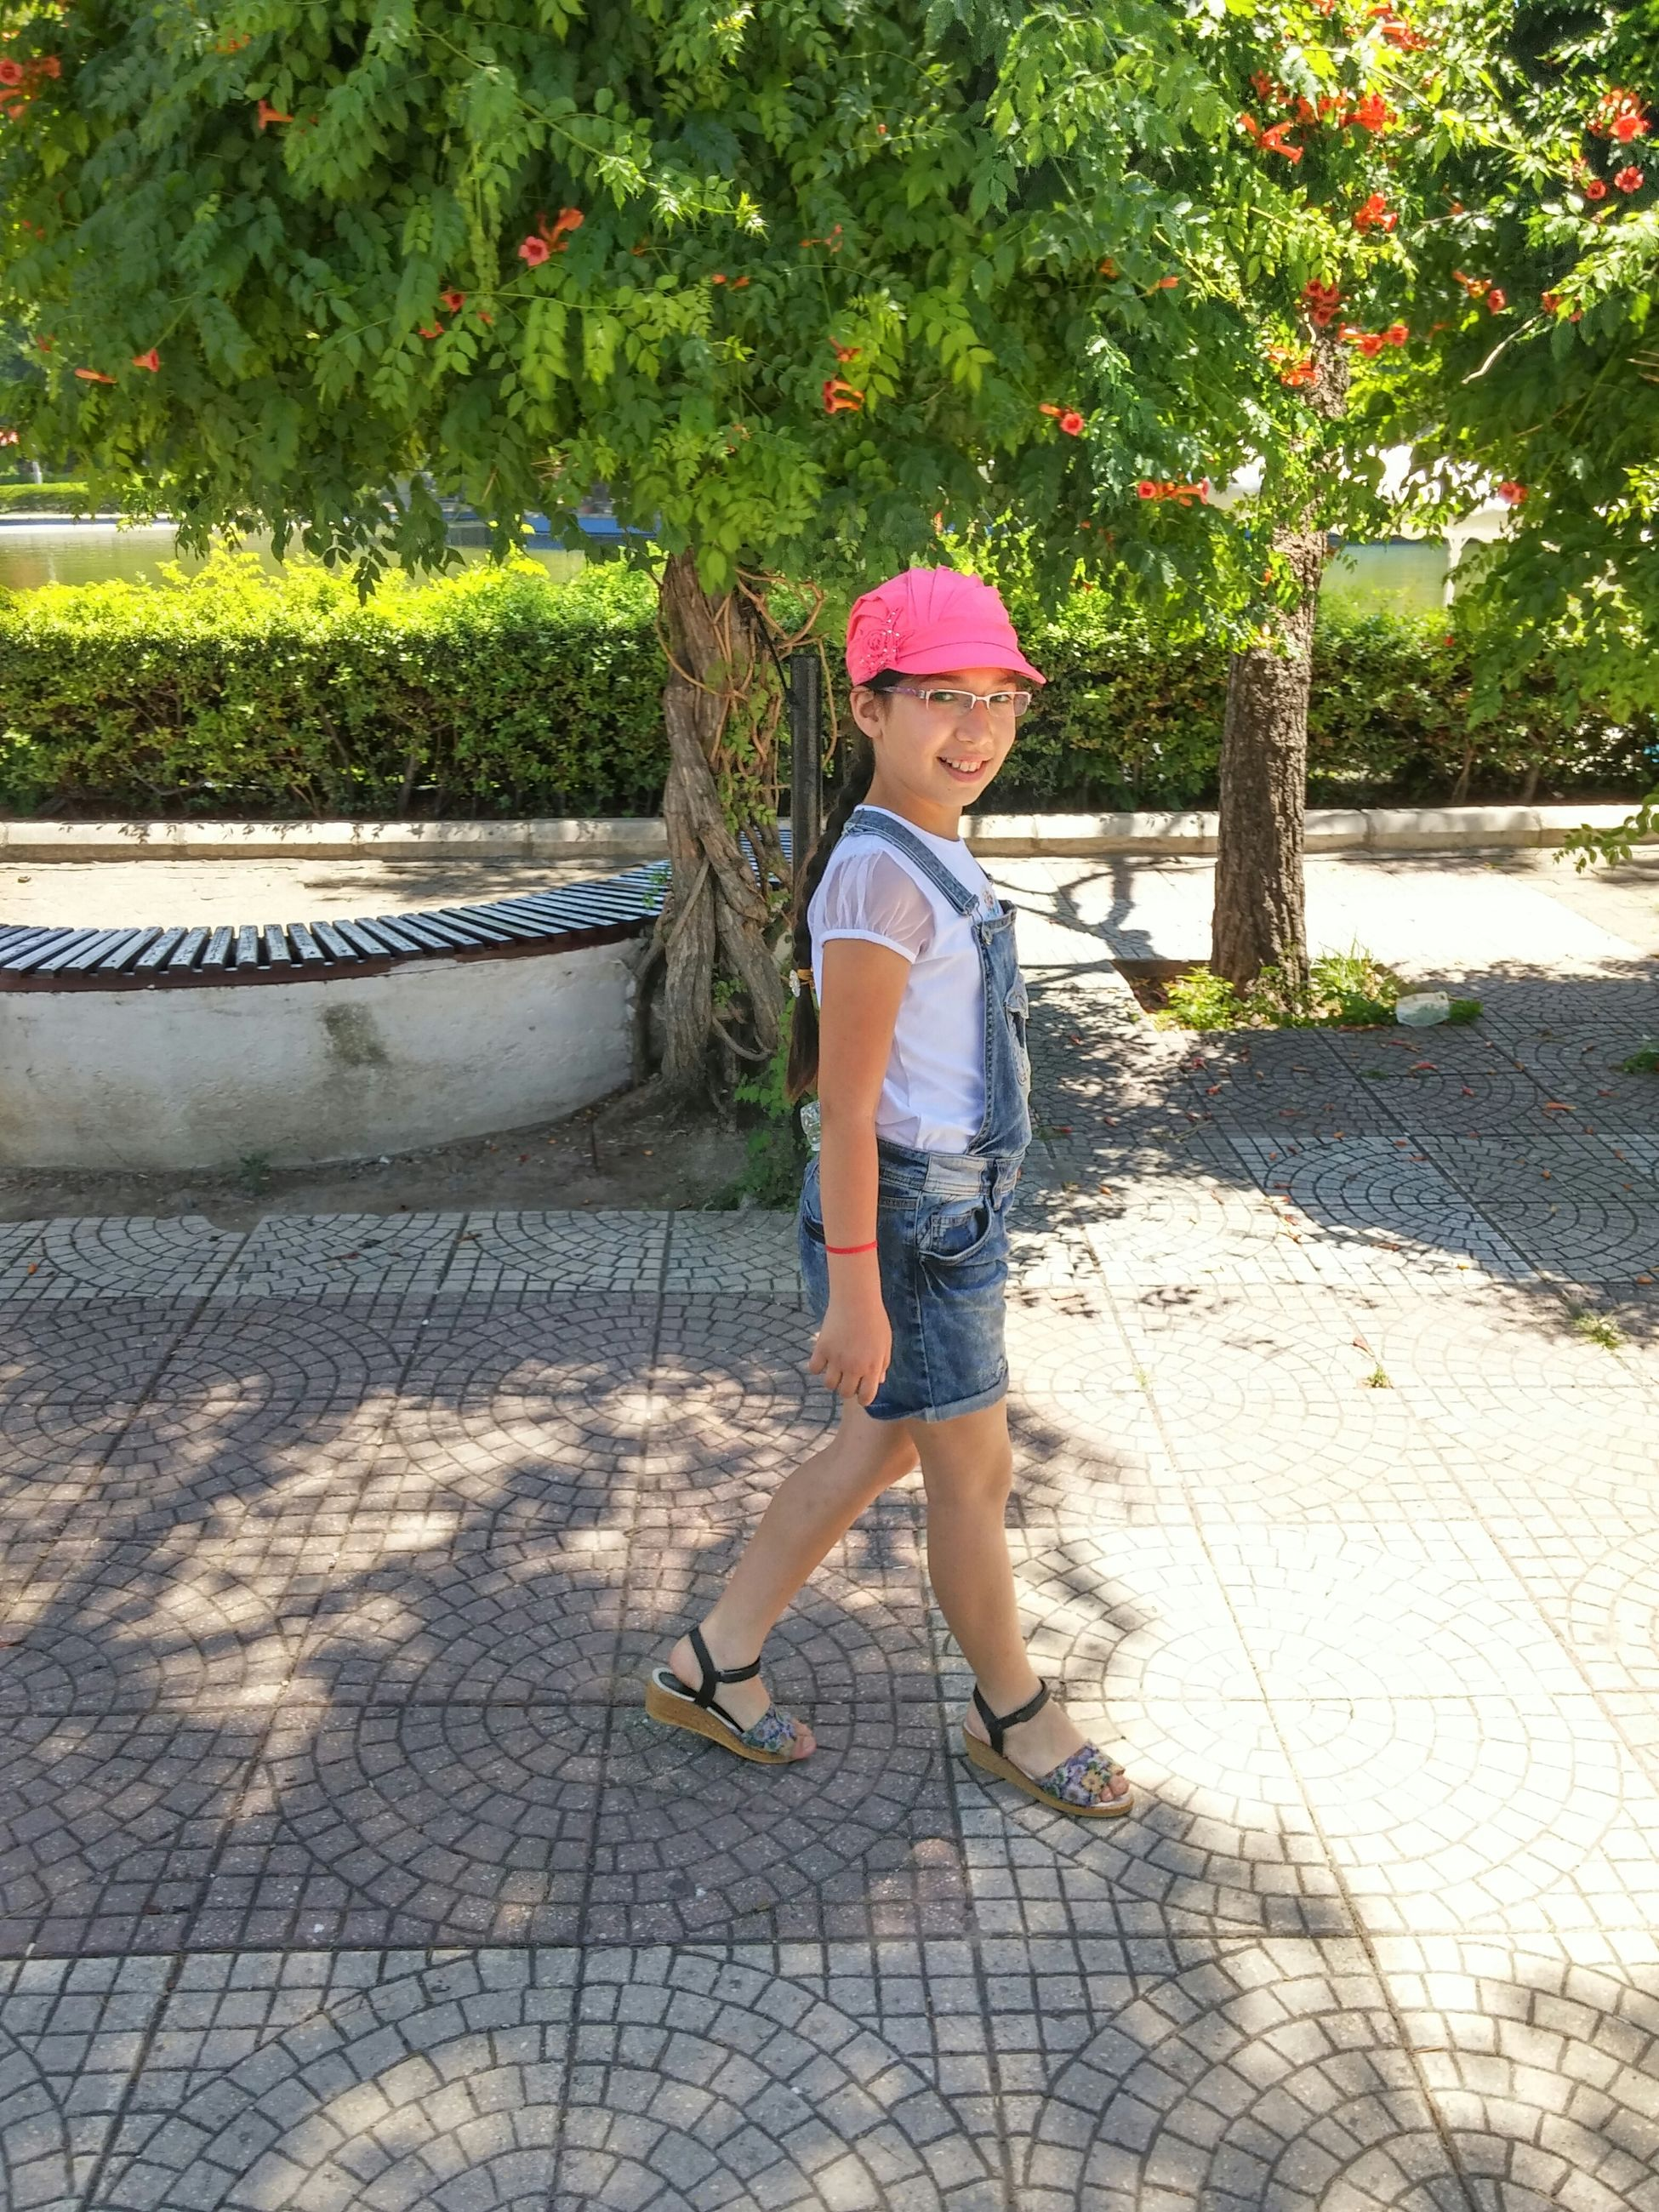 full length, childhood, lifestyles, casual clothing, leisure activity, elementary age, park - man made space, person, tree, girls, boys, sunlight, innocence, footpath, day, shadow, standing, outdoors